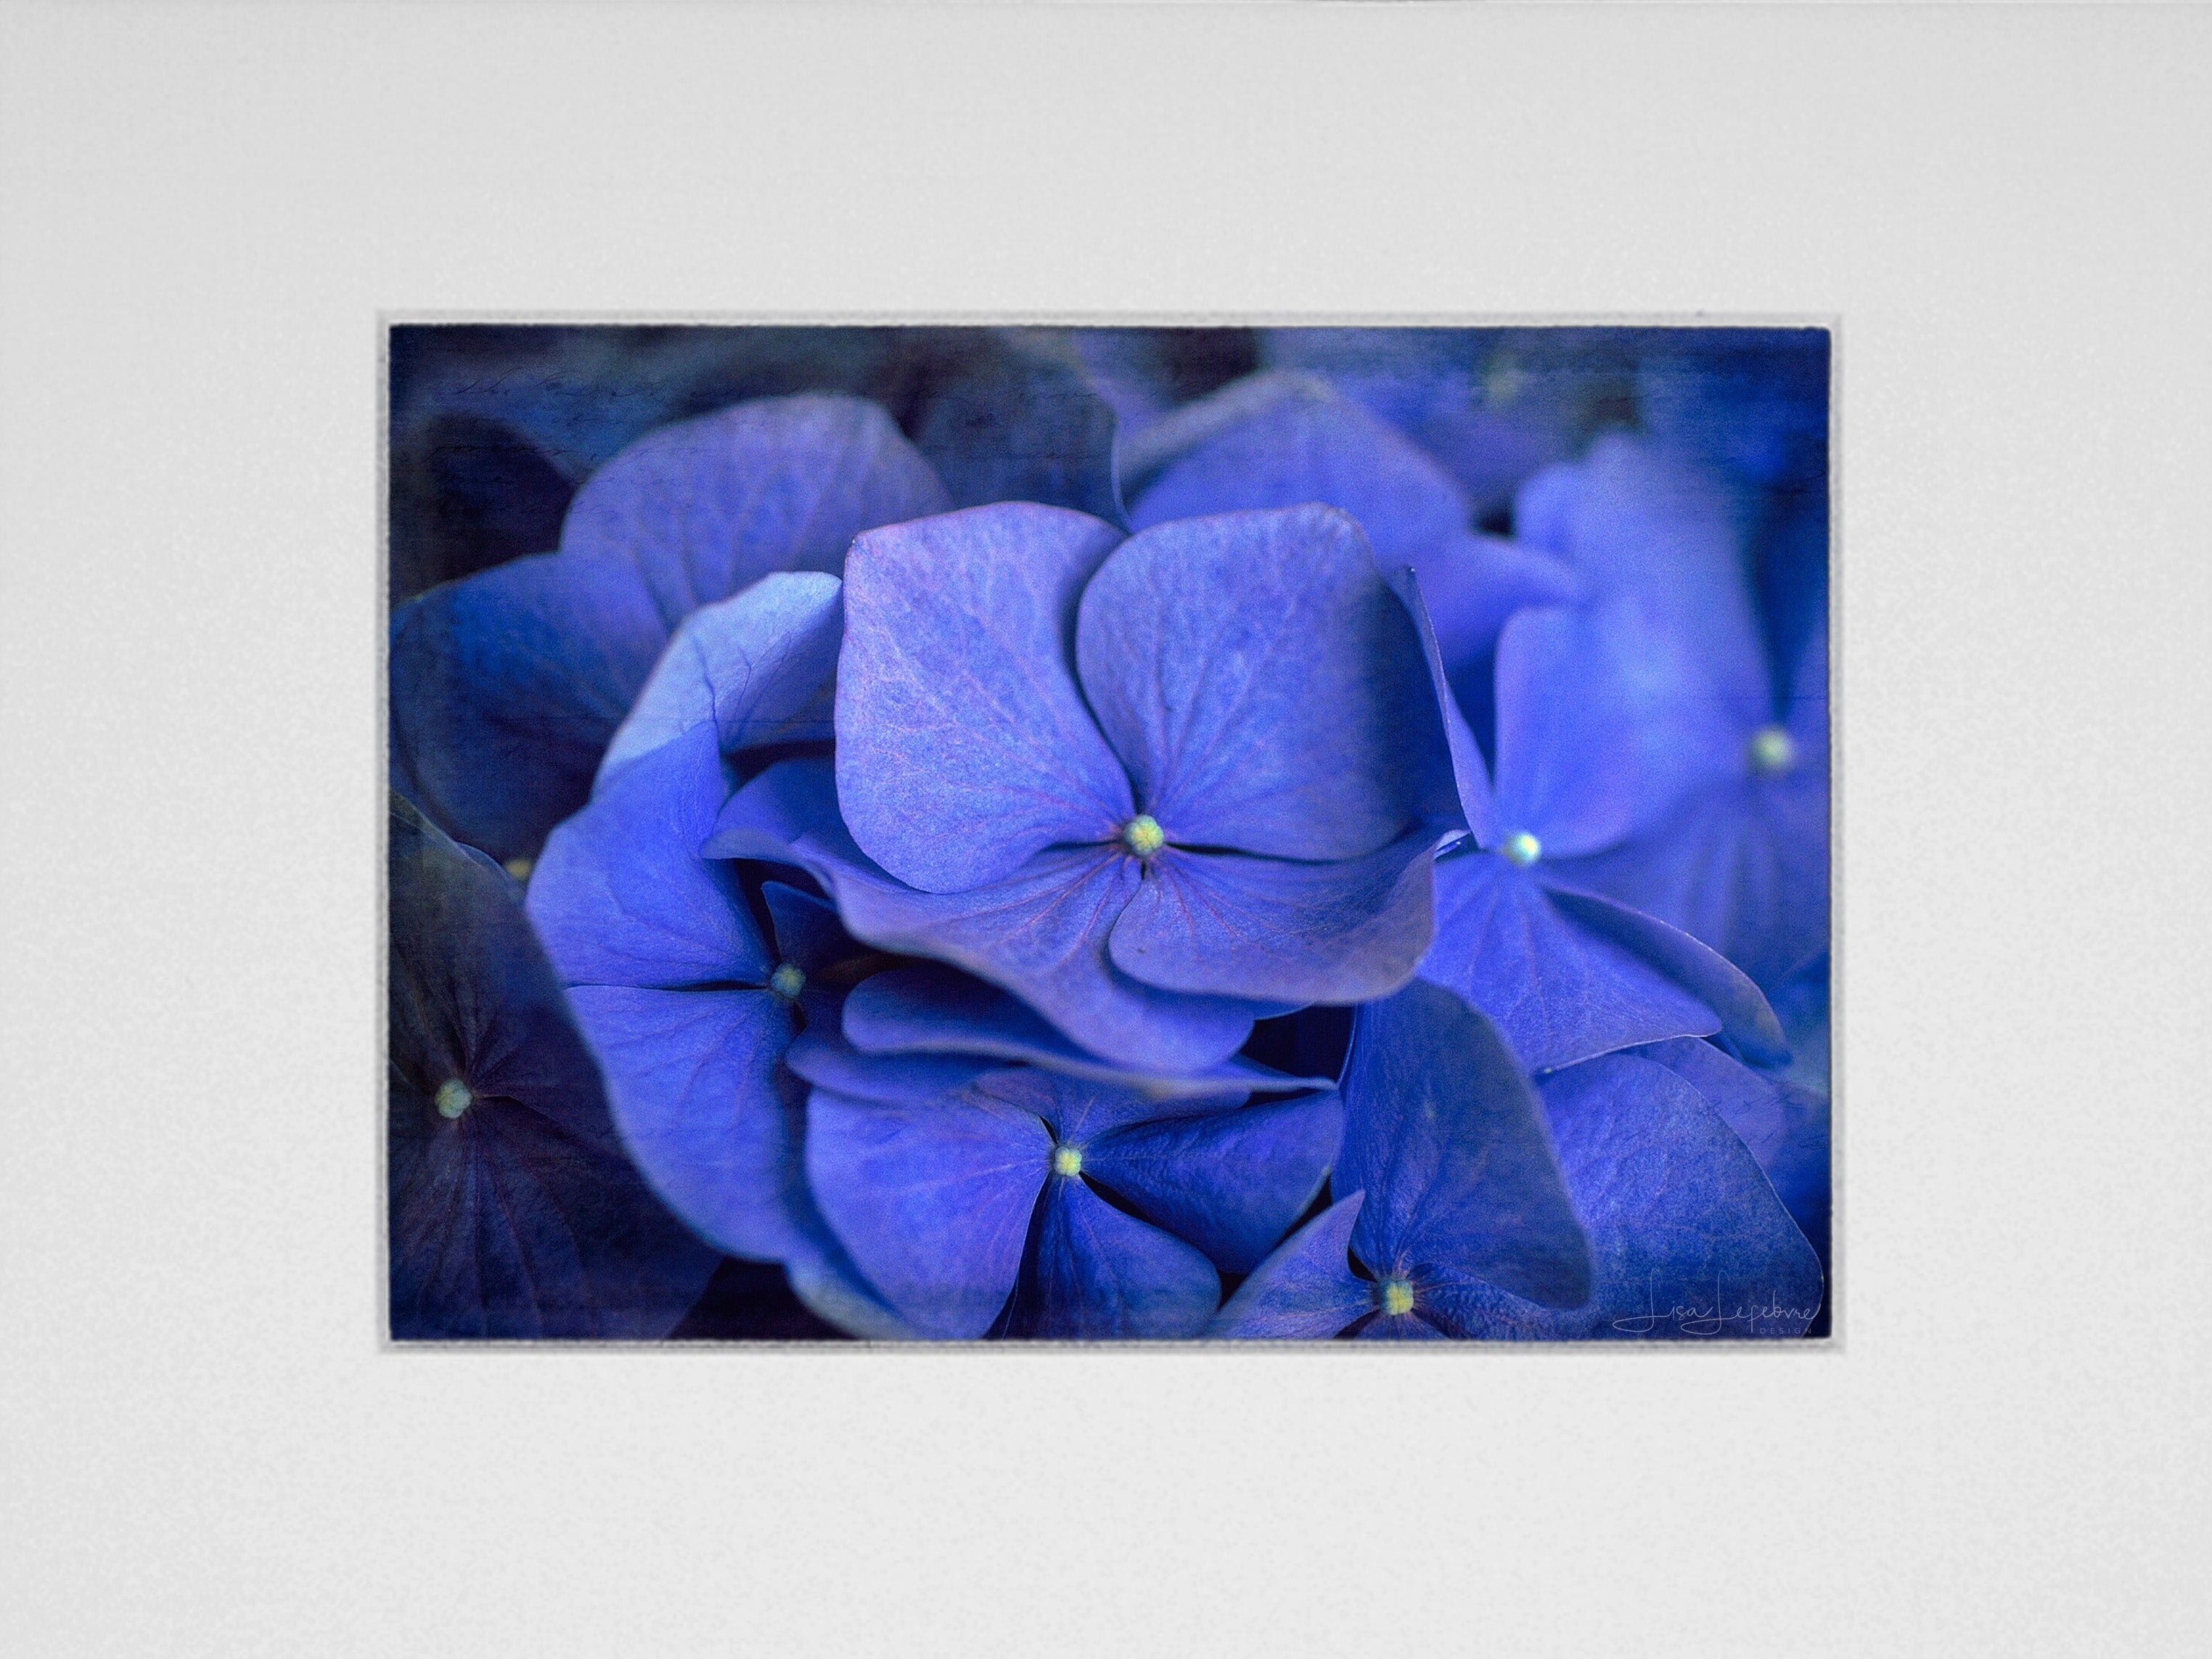 Blue Aster Hydrangea Print - Original Photographic Print